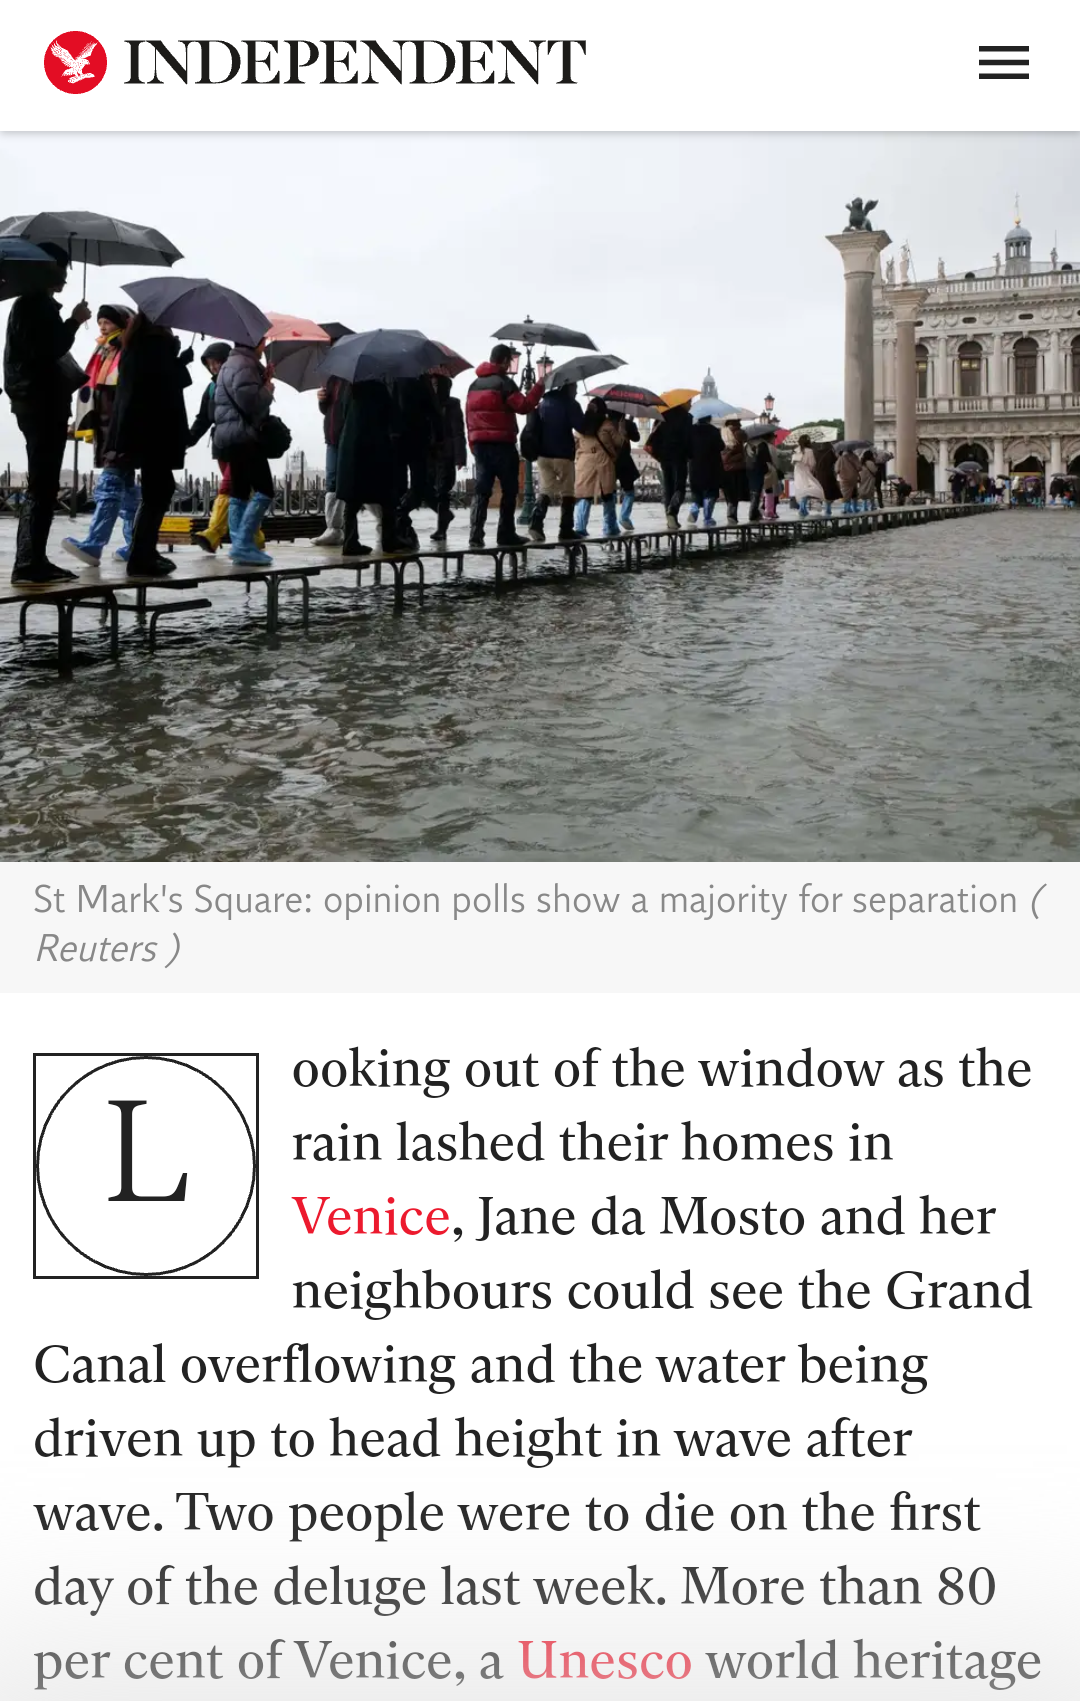 The Independent 22.11.2019: 'Fears For Venice Run Far Deeper Than The Flood Waters' And Further Coverage Of Ongoing Flooding